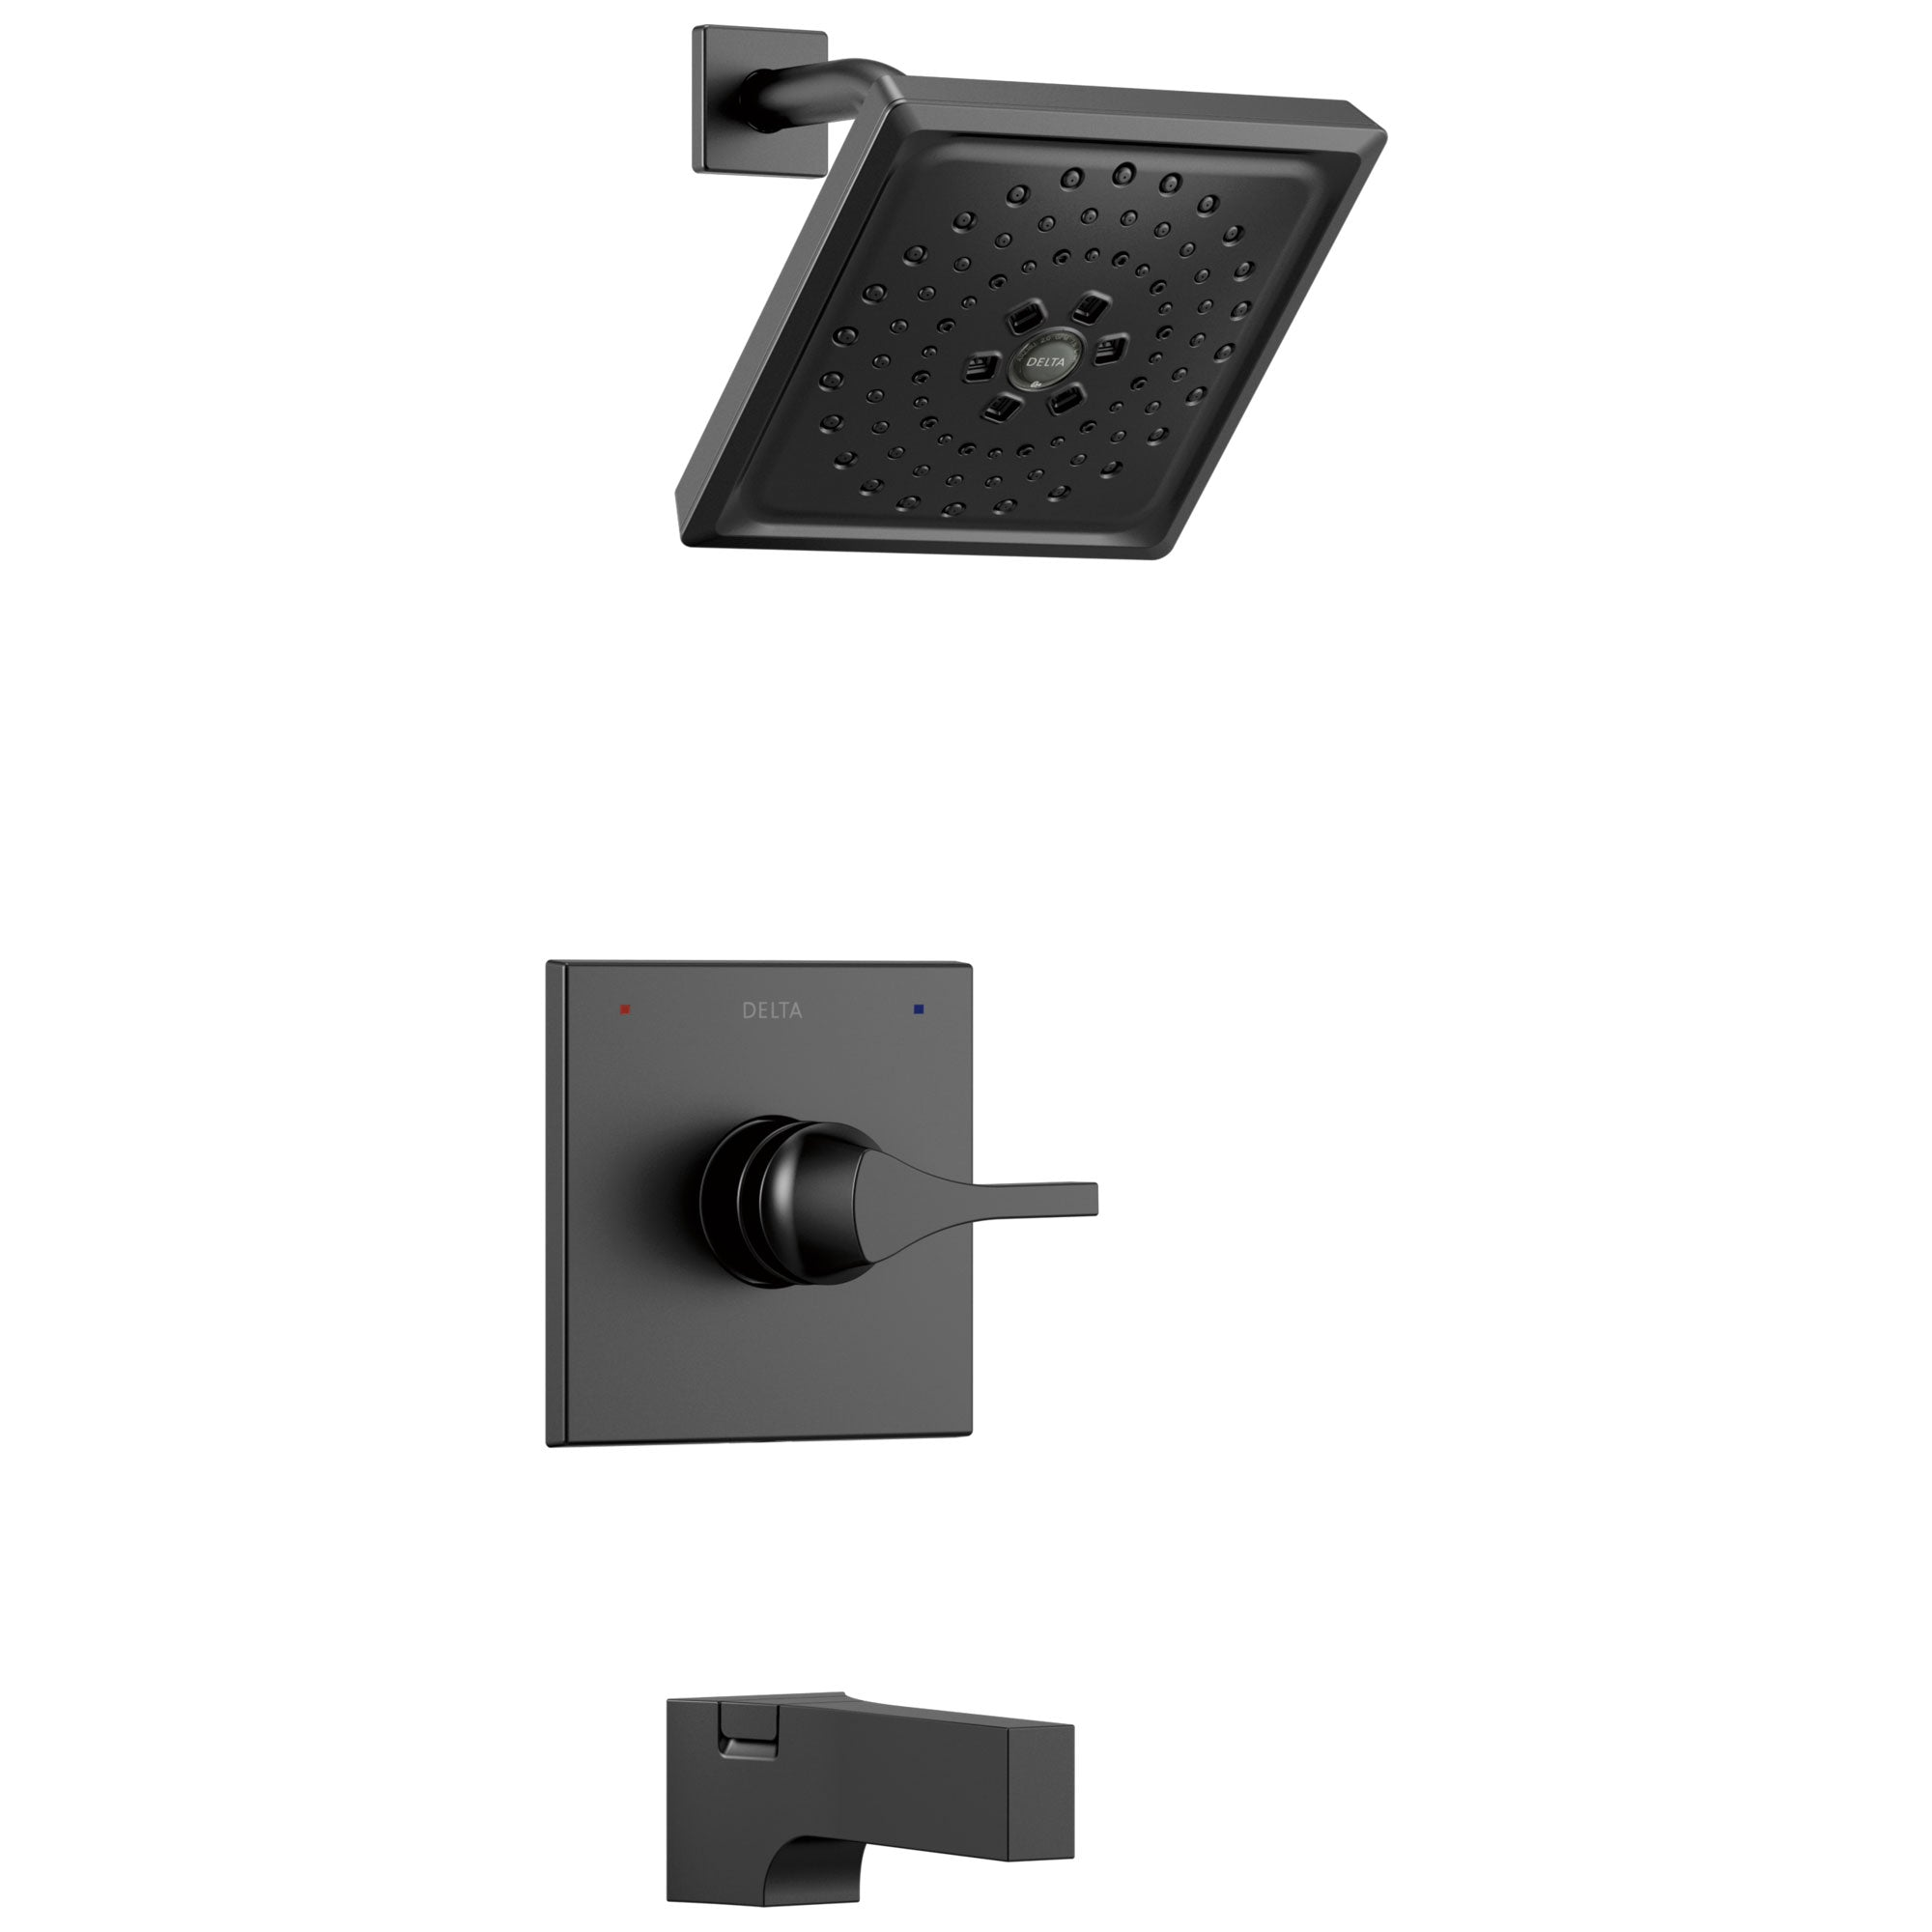 Delta Zura Matte Black Finish 14 Series H2Okinetic Tub and Shower Combination Faucet Includes Cartridge, Handle, and Valve without Stops D3636V